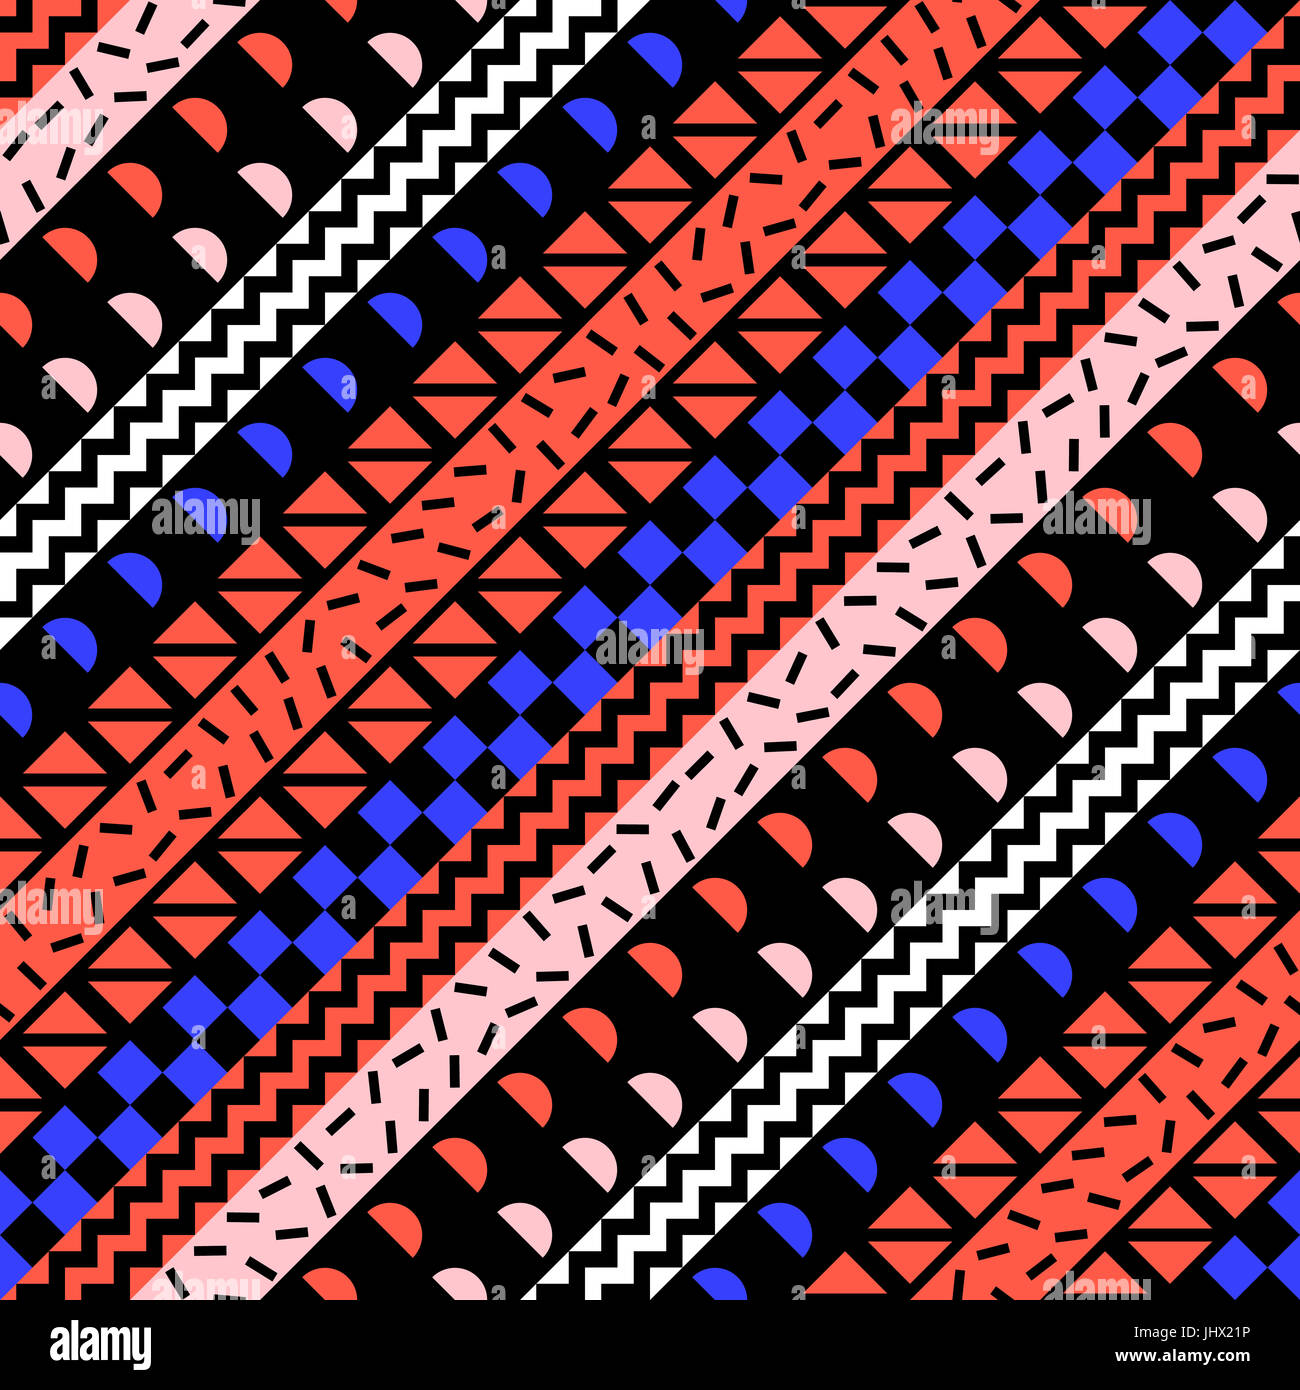 Retro Color Tribal Seamless Pattern Fancy Abstract Geometric Art